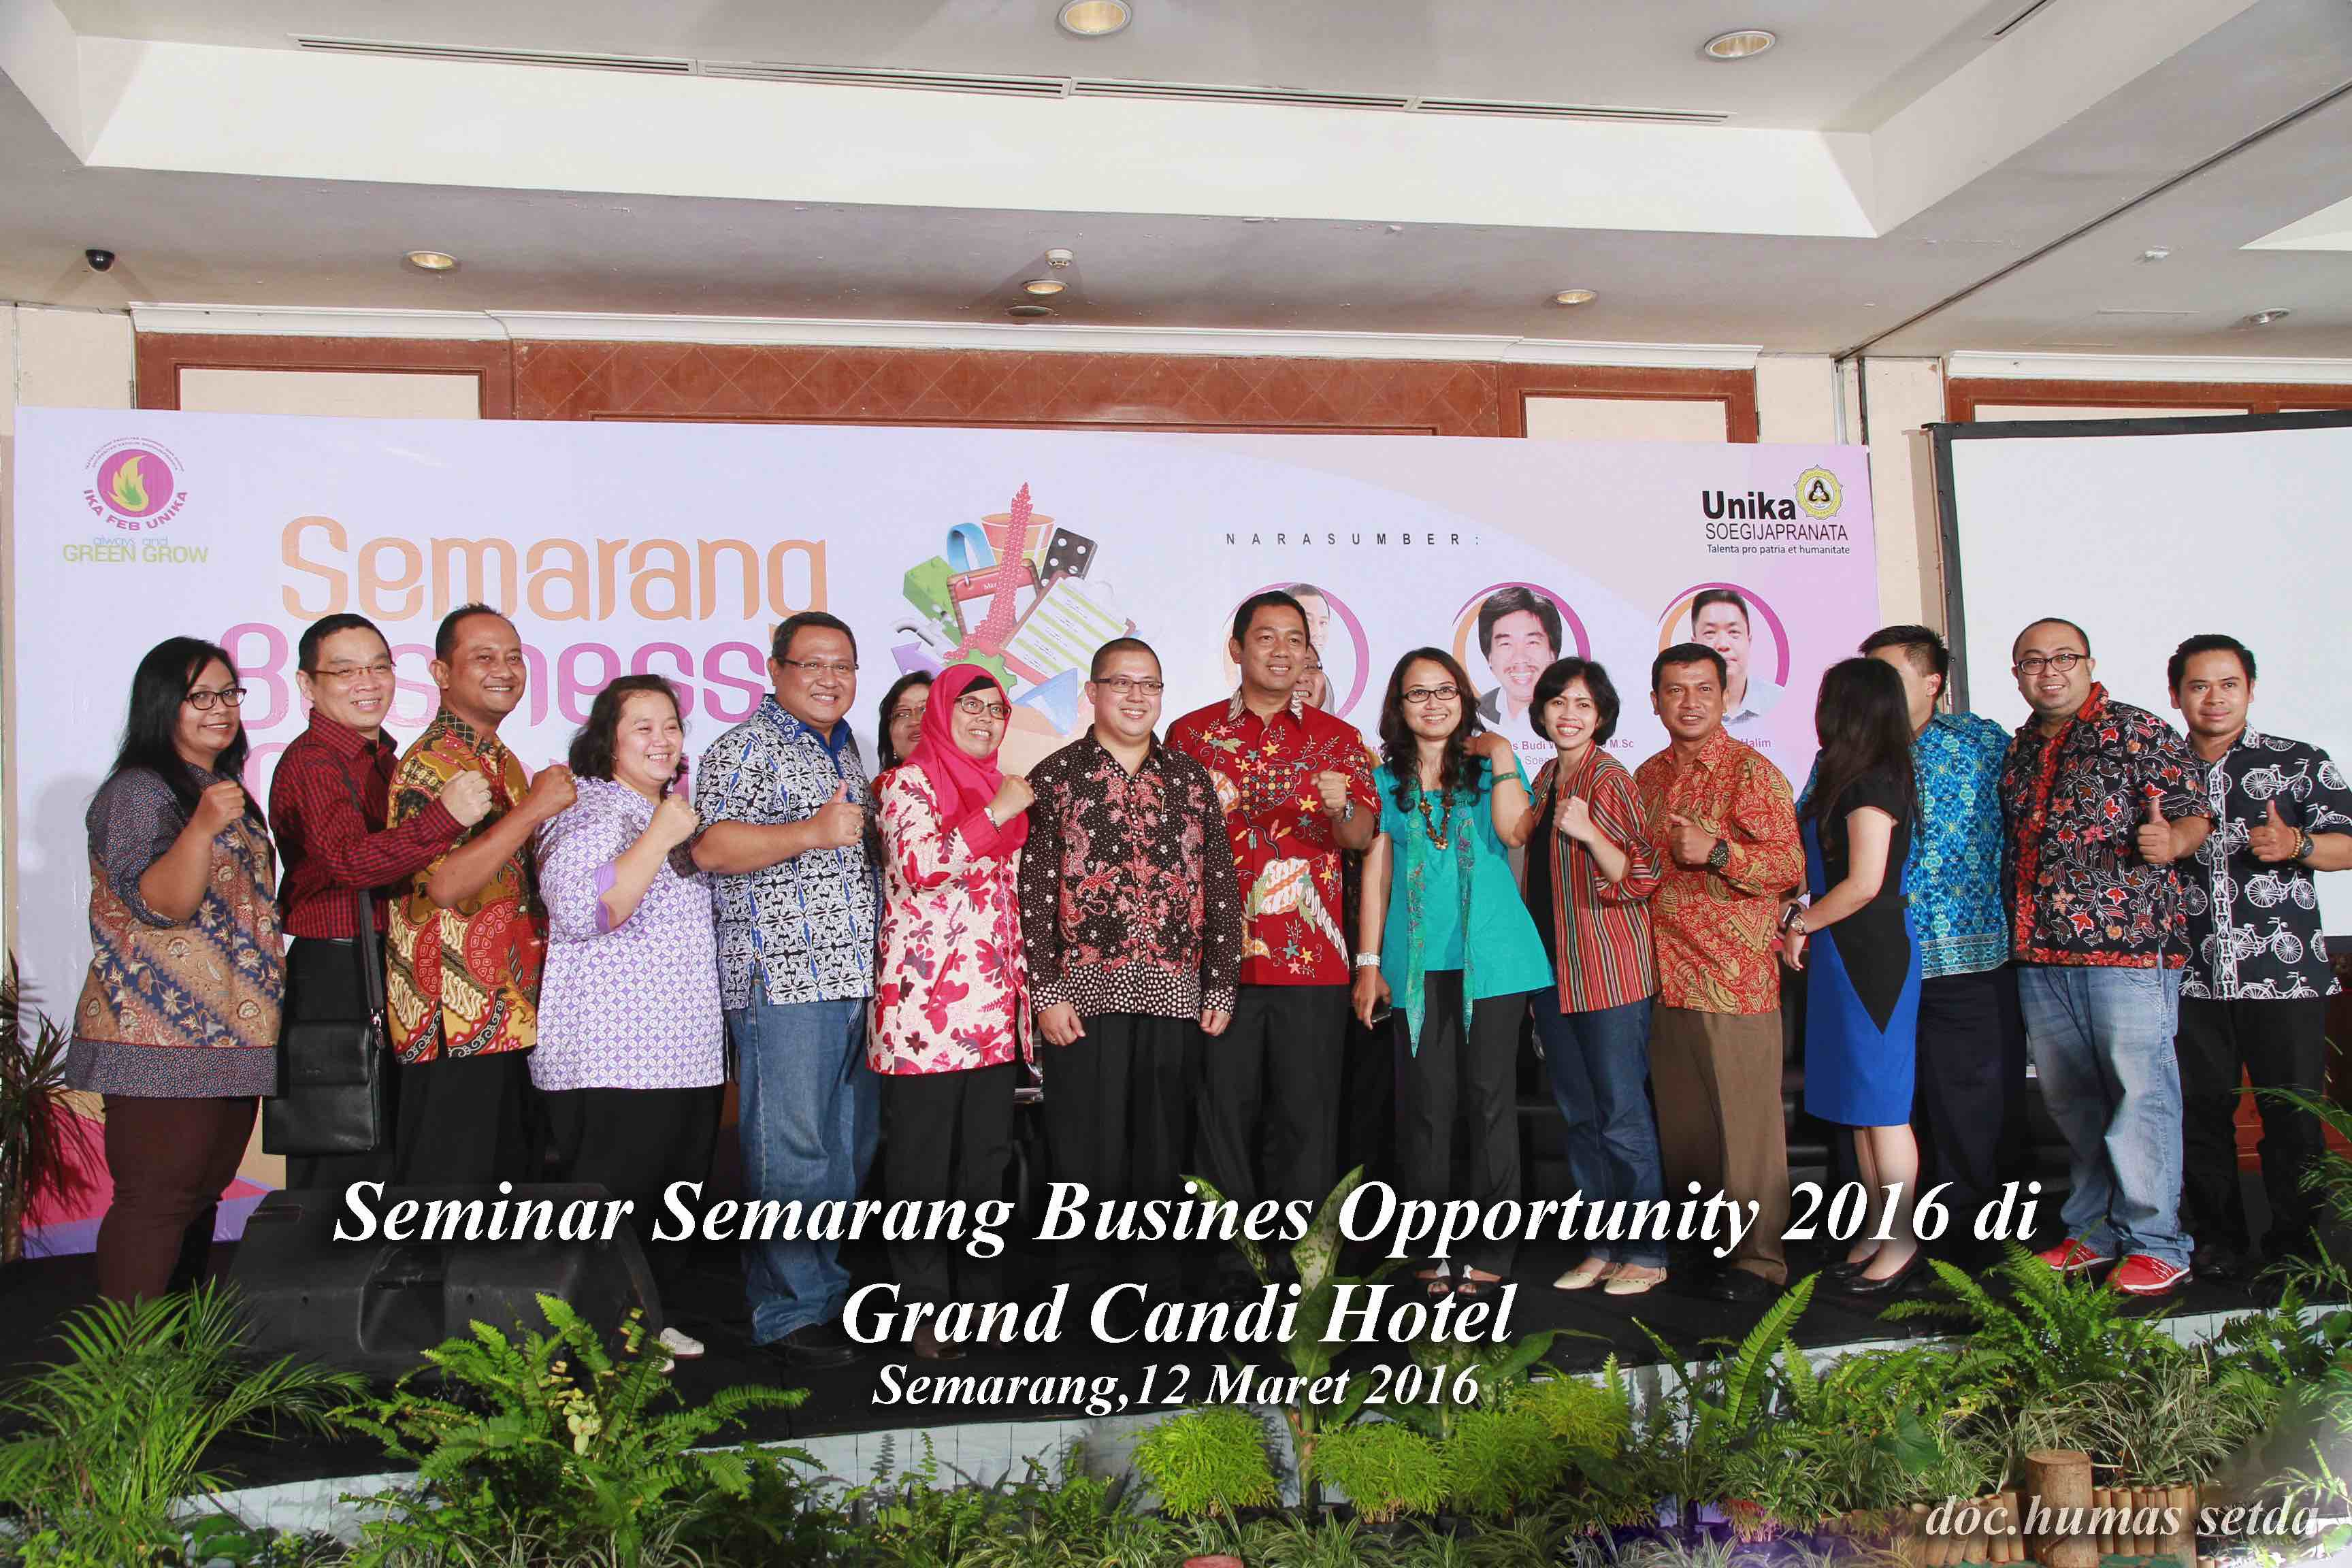 Seminar Semarang Business Opportunity 2016 di Grand Candi Hotel